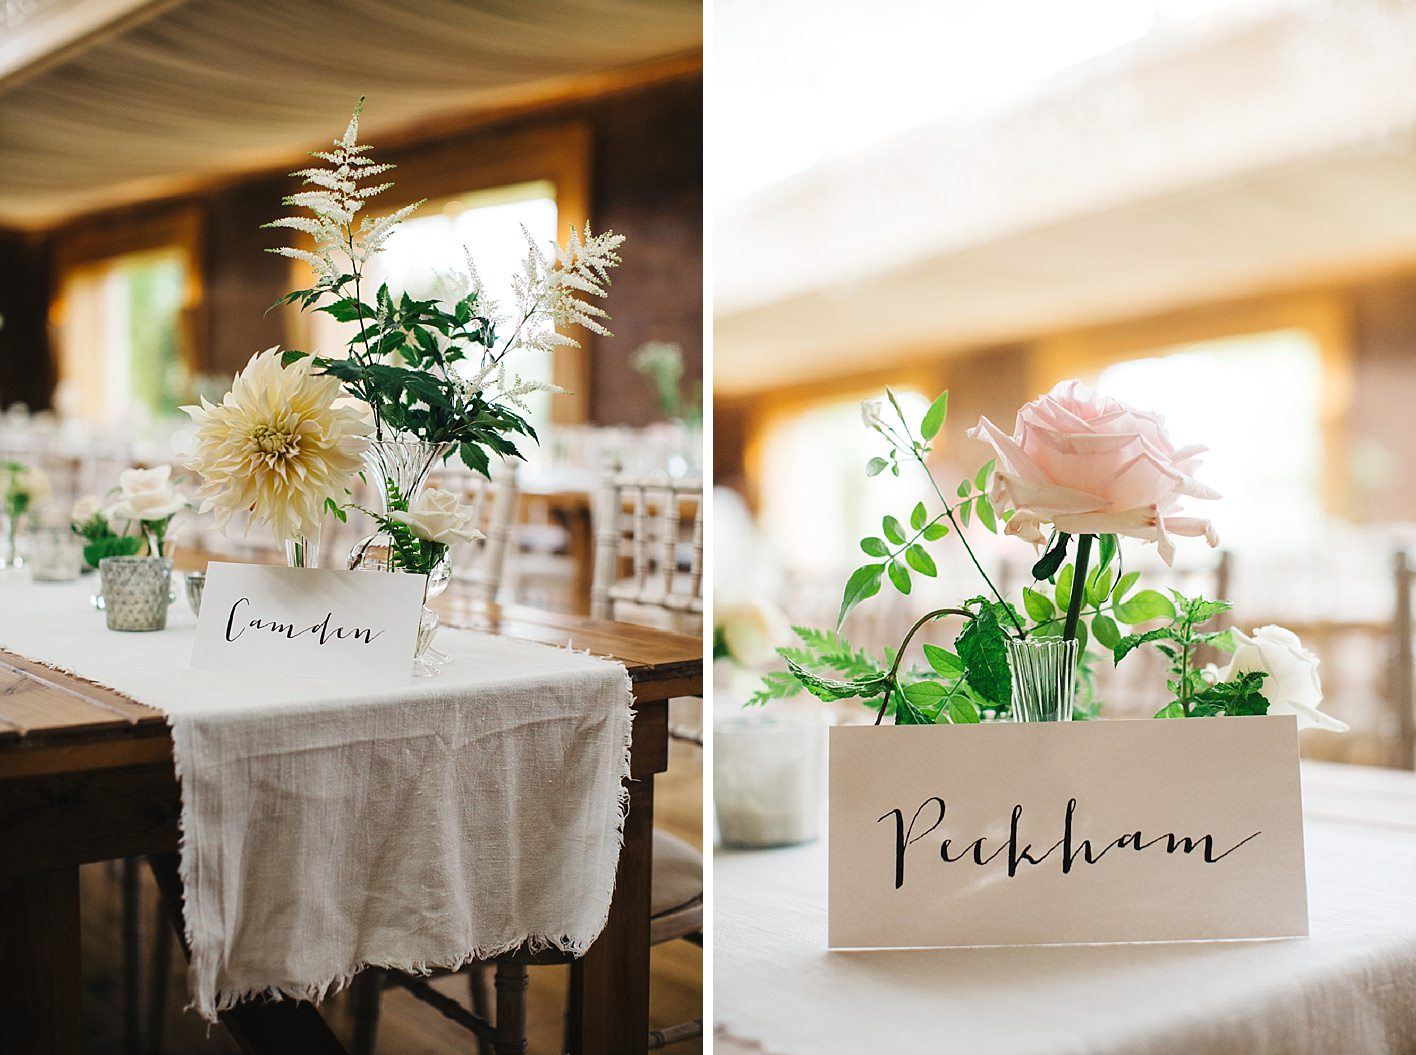 Table names and flowers at elmore court